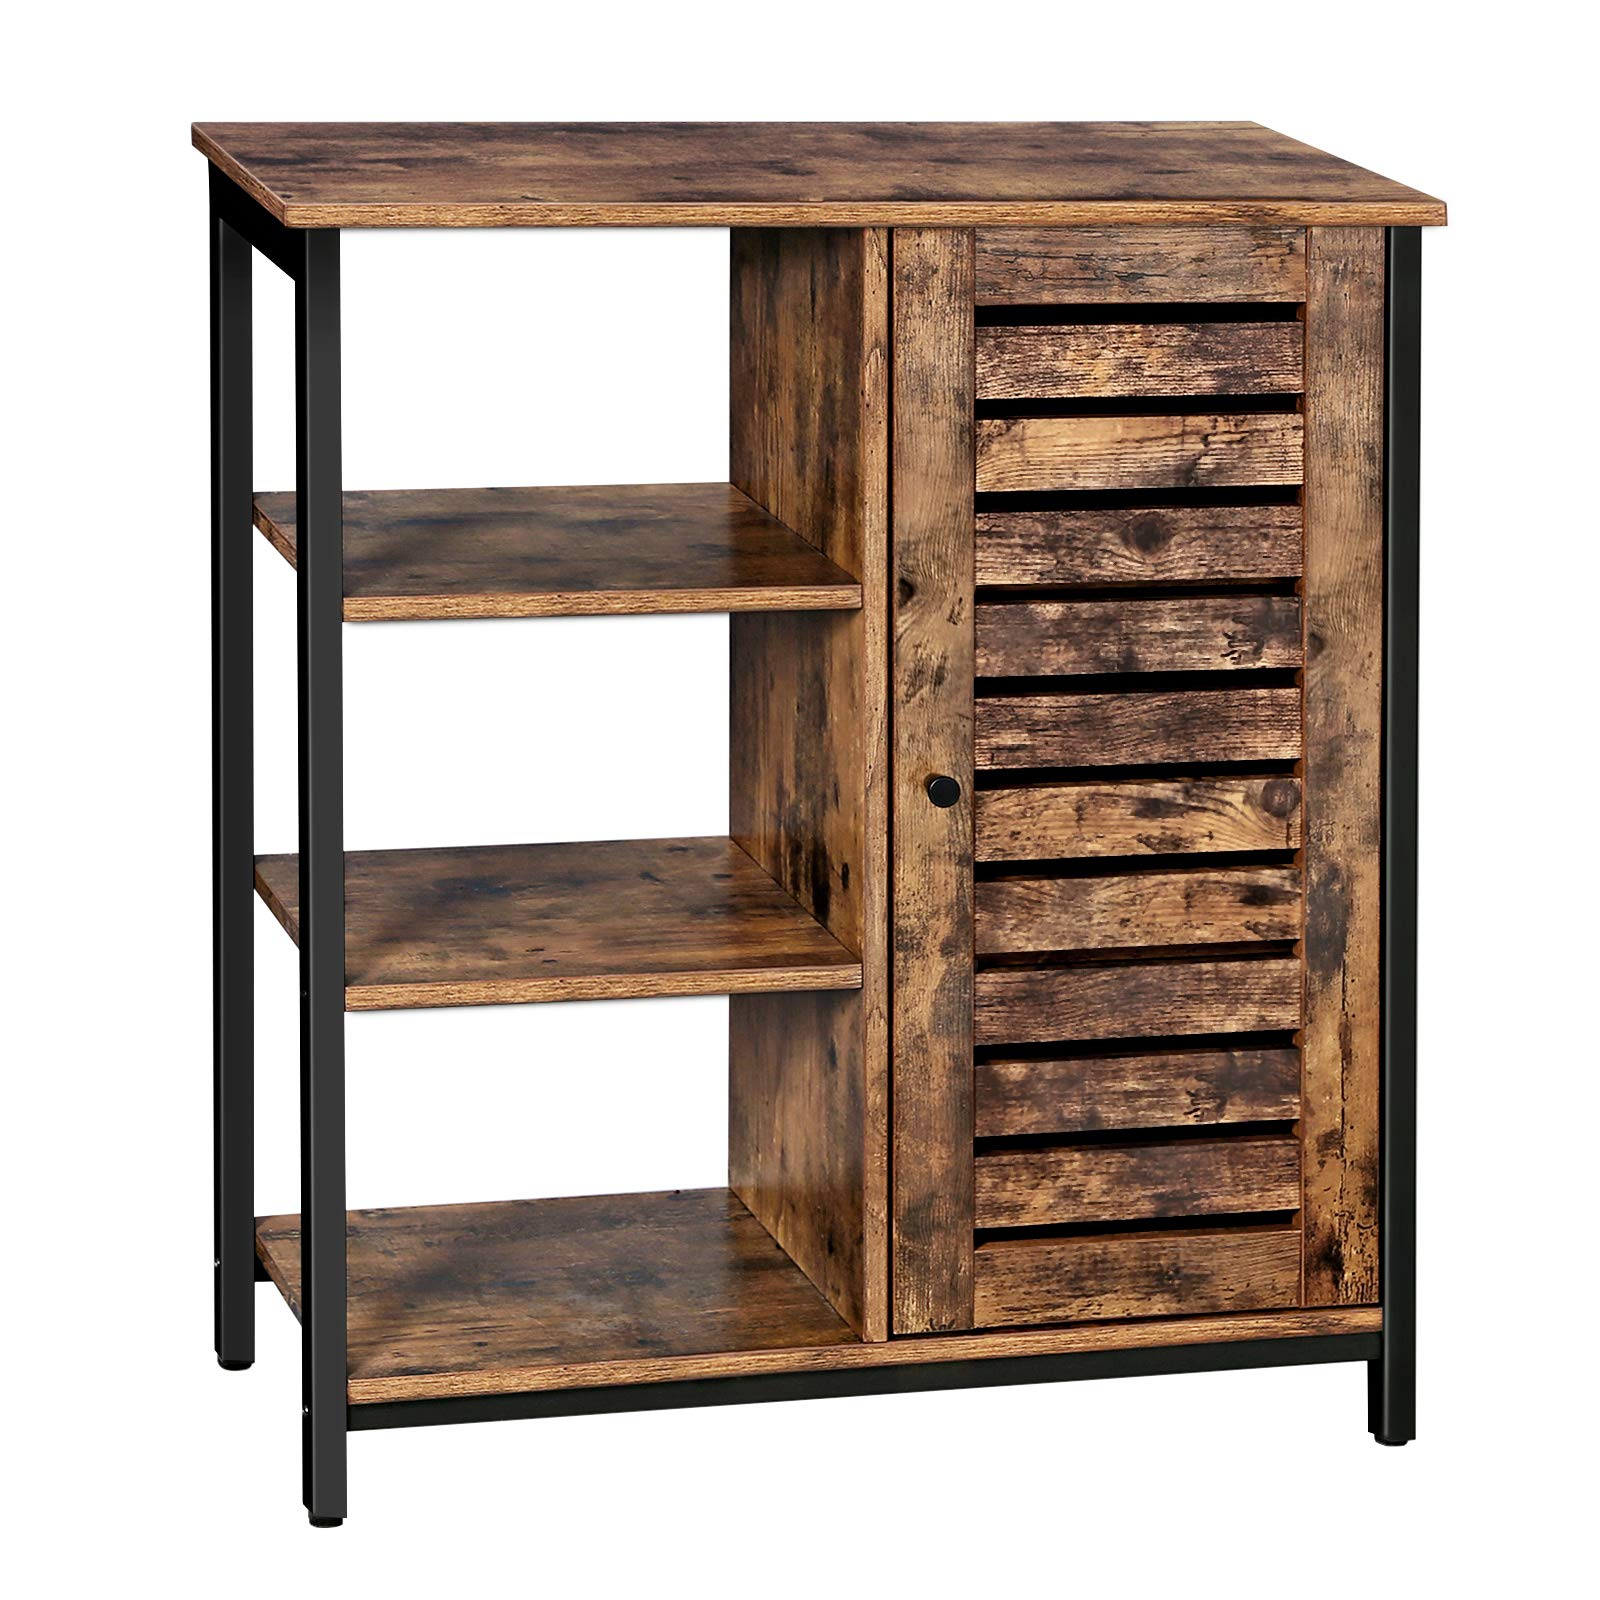 VASAGLE Storage Cabinet, Cupboard, Multipurpose Cabinet, 3 Shelves and a Cabinet with Door, for Kitchen, Living Room, Home Office, Industrial Style, Rustic Brown and Black LSC74BX